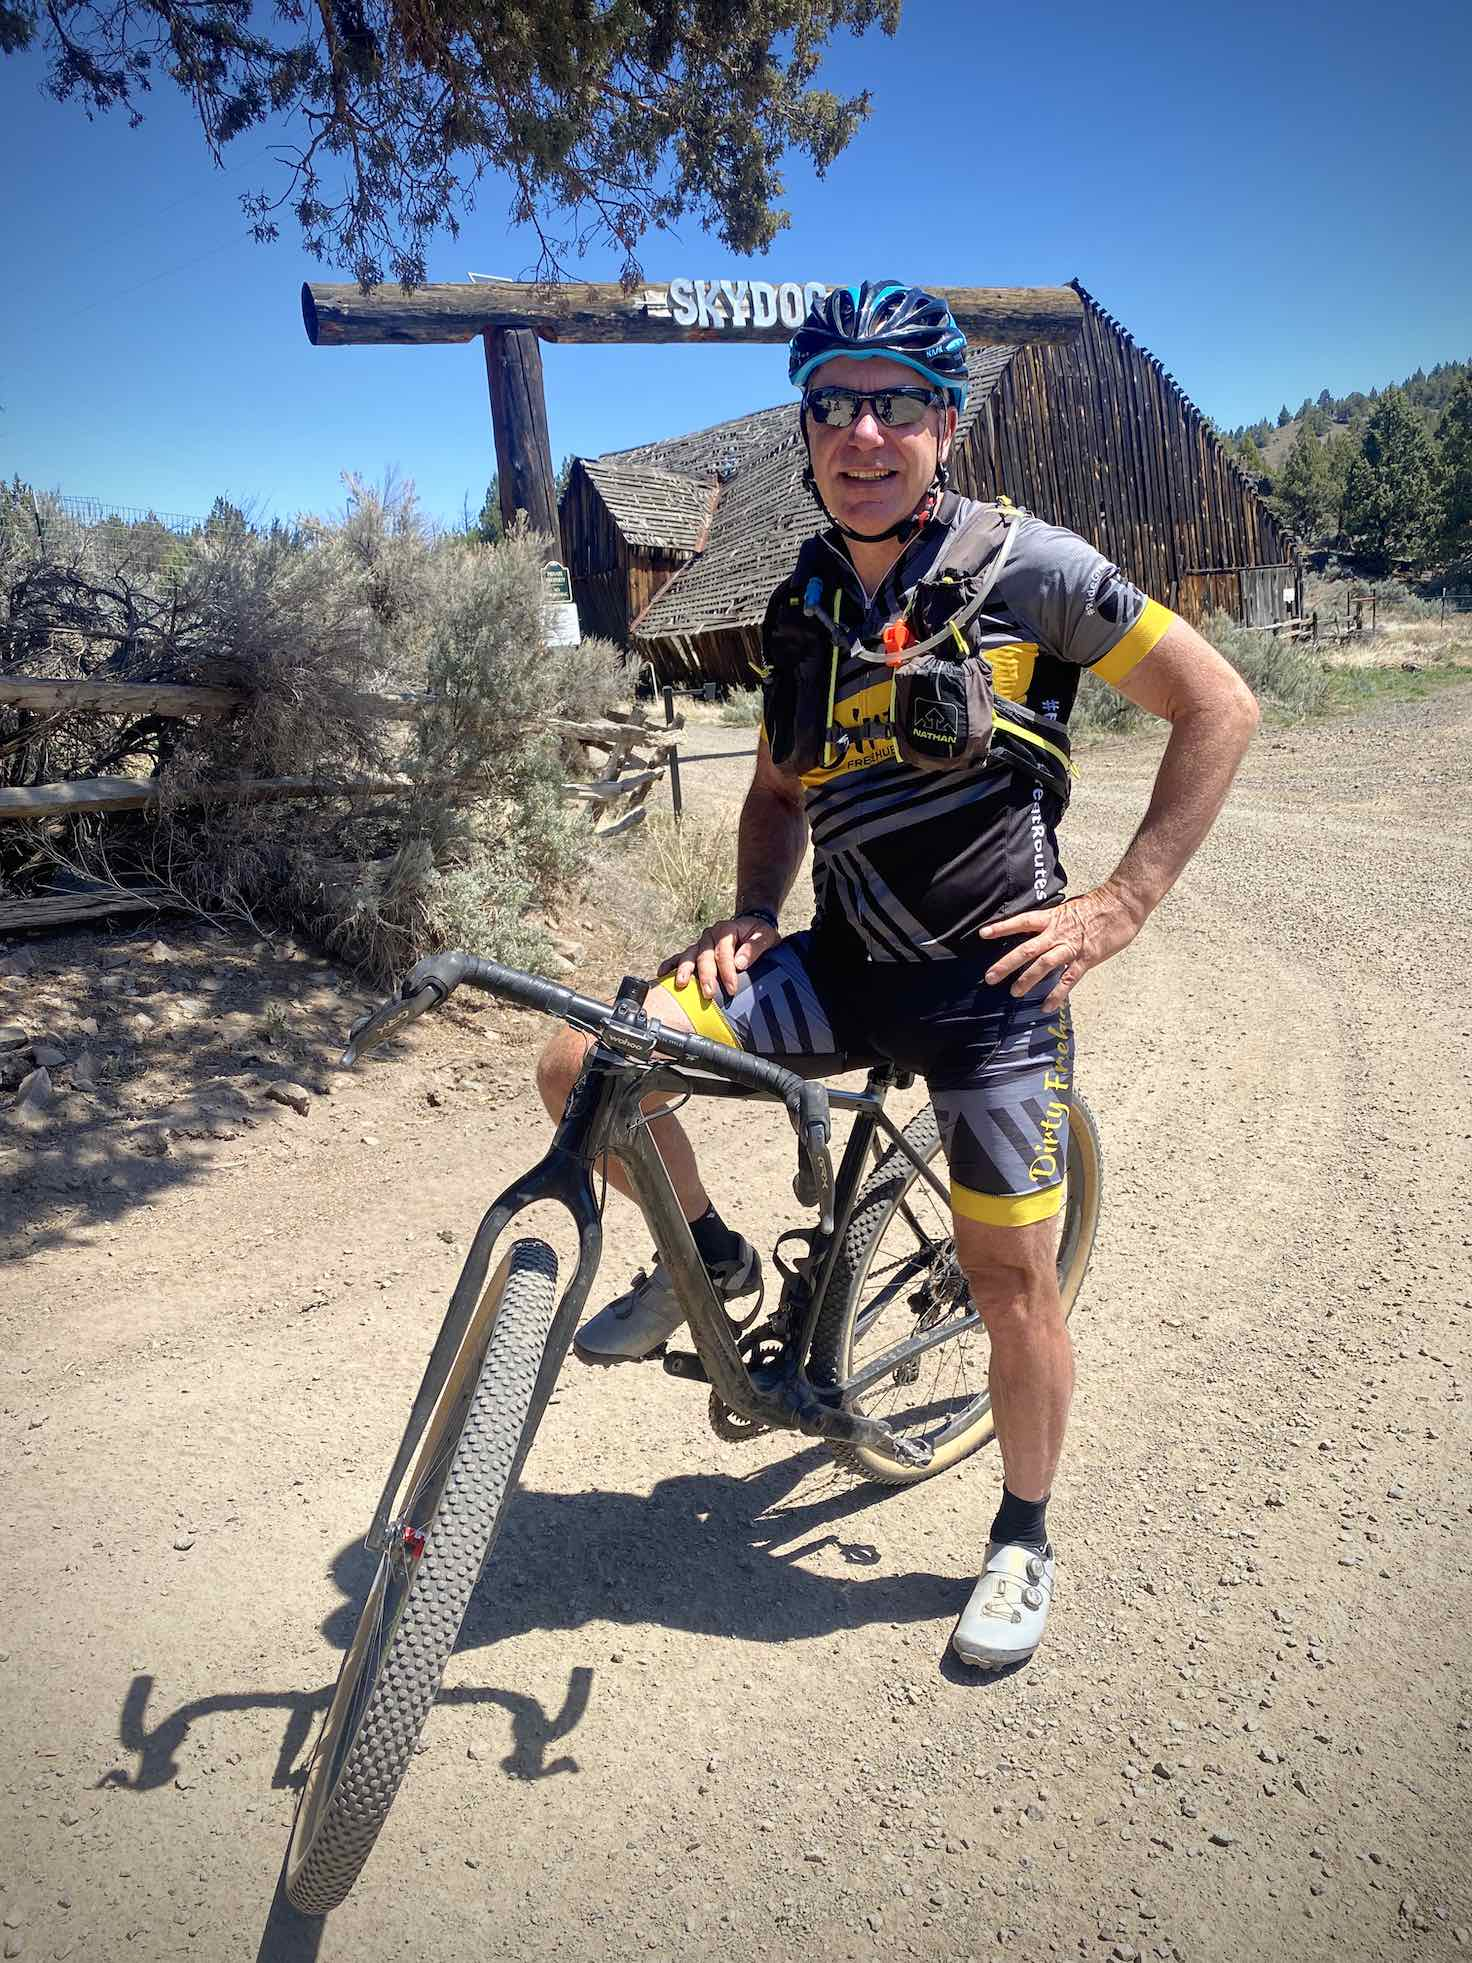 Gravel cyclist in front of the Skydog Ranch sign.